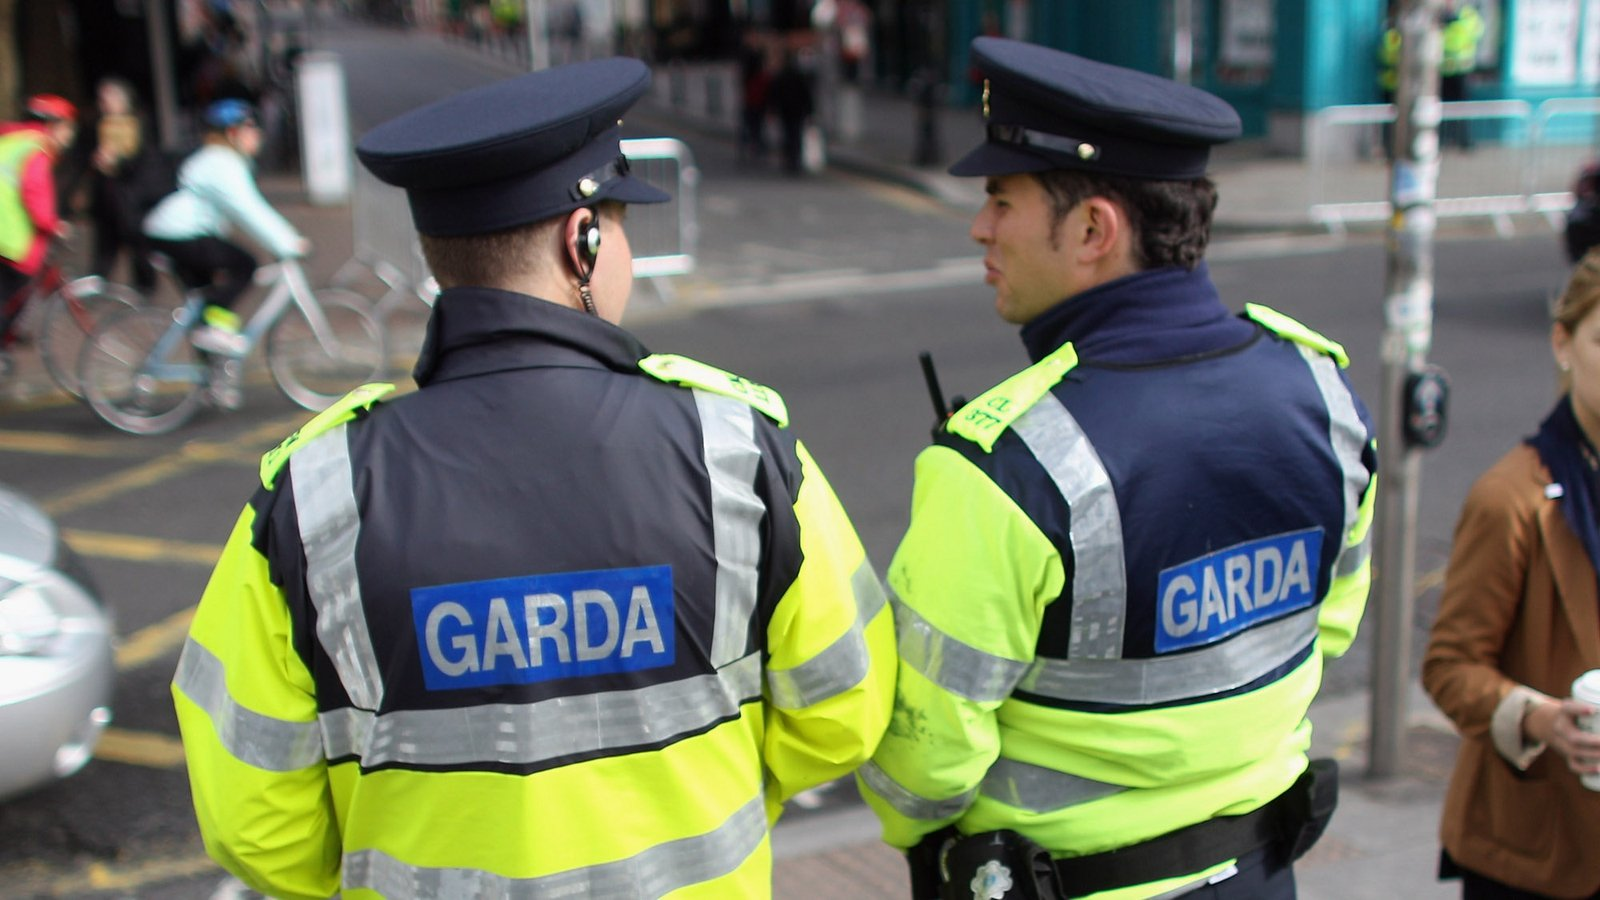 Gardaí win right to strike and negotiate pay